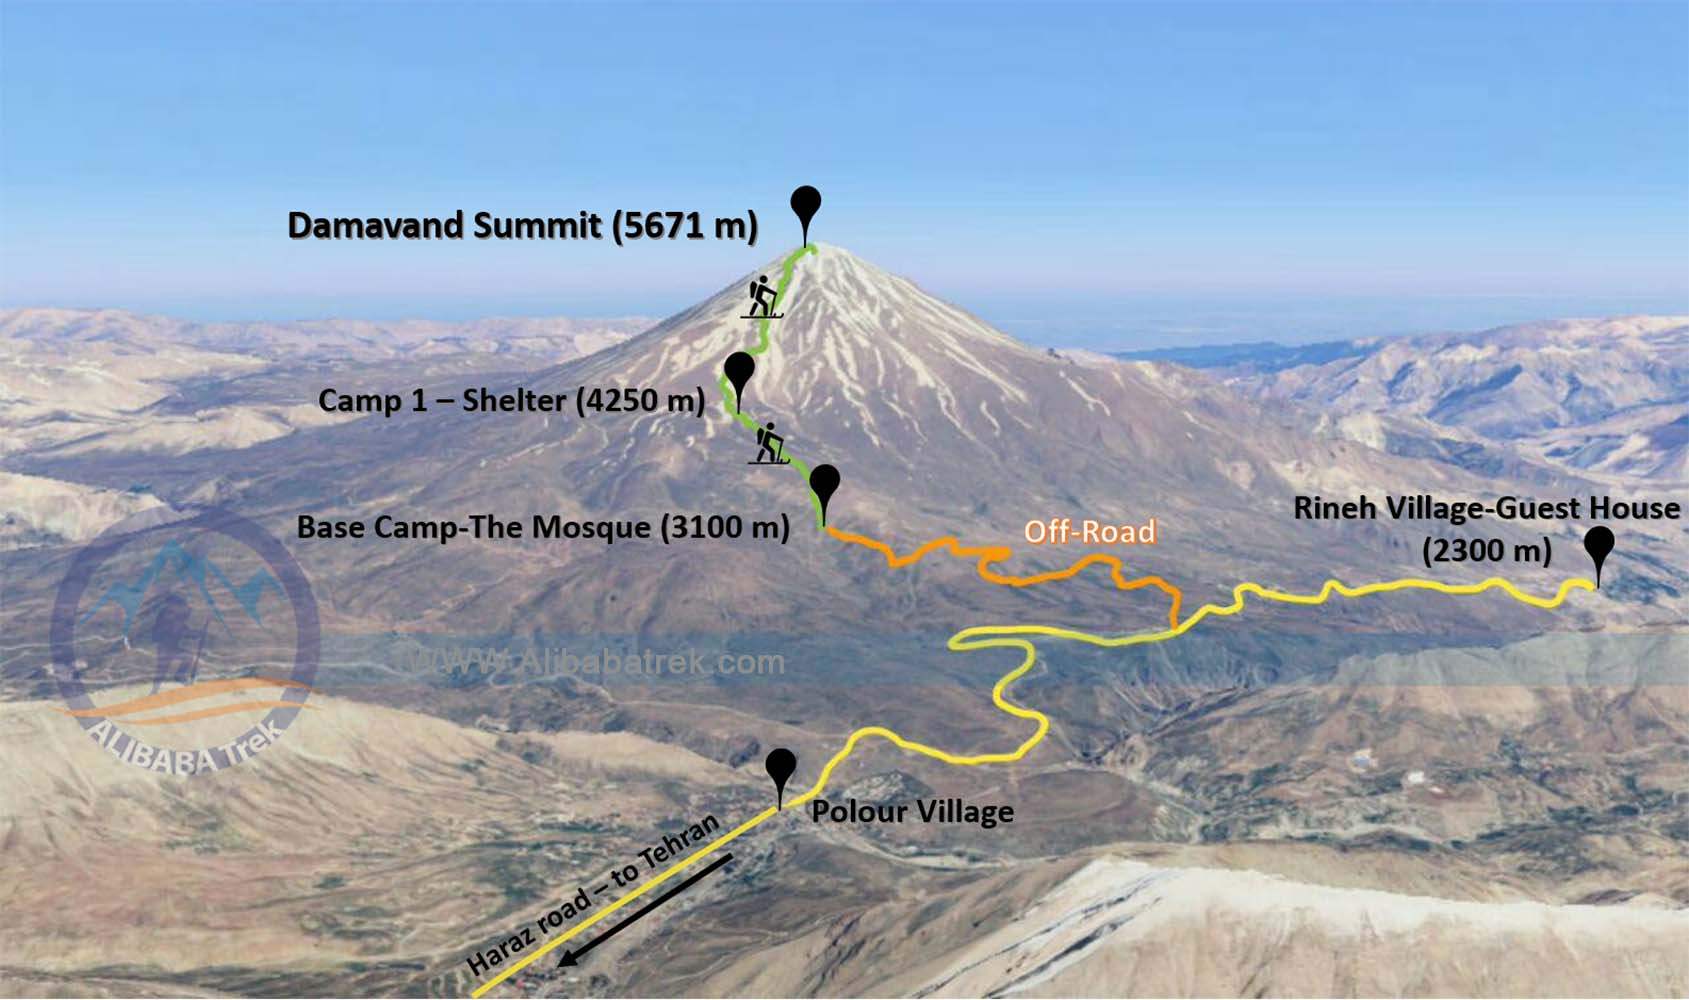 Alibabatrek Damavand tour climb damavand mount damavand hike damavnad trek